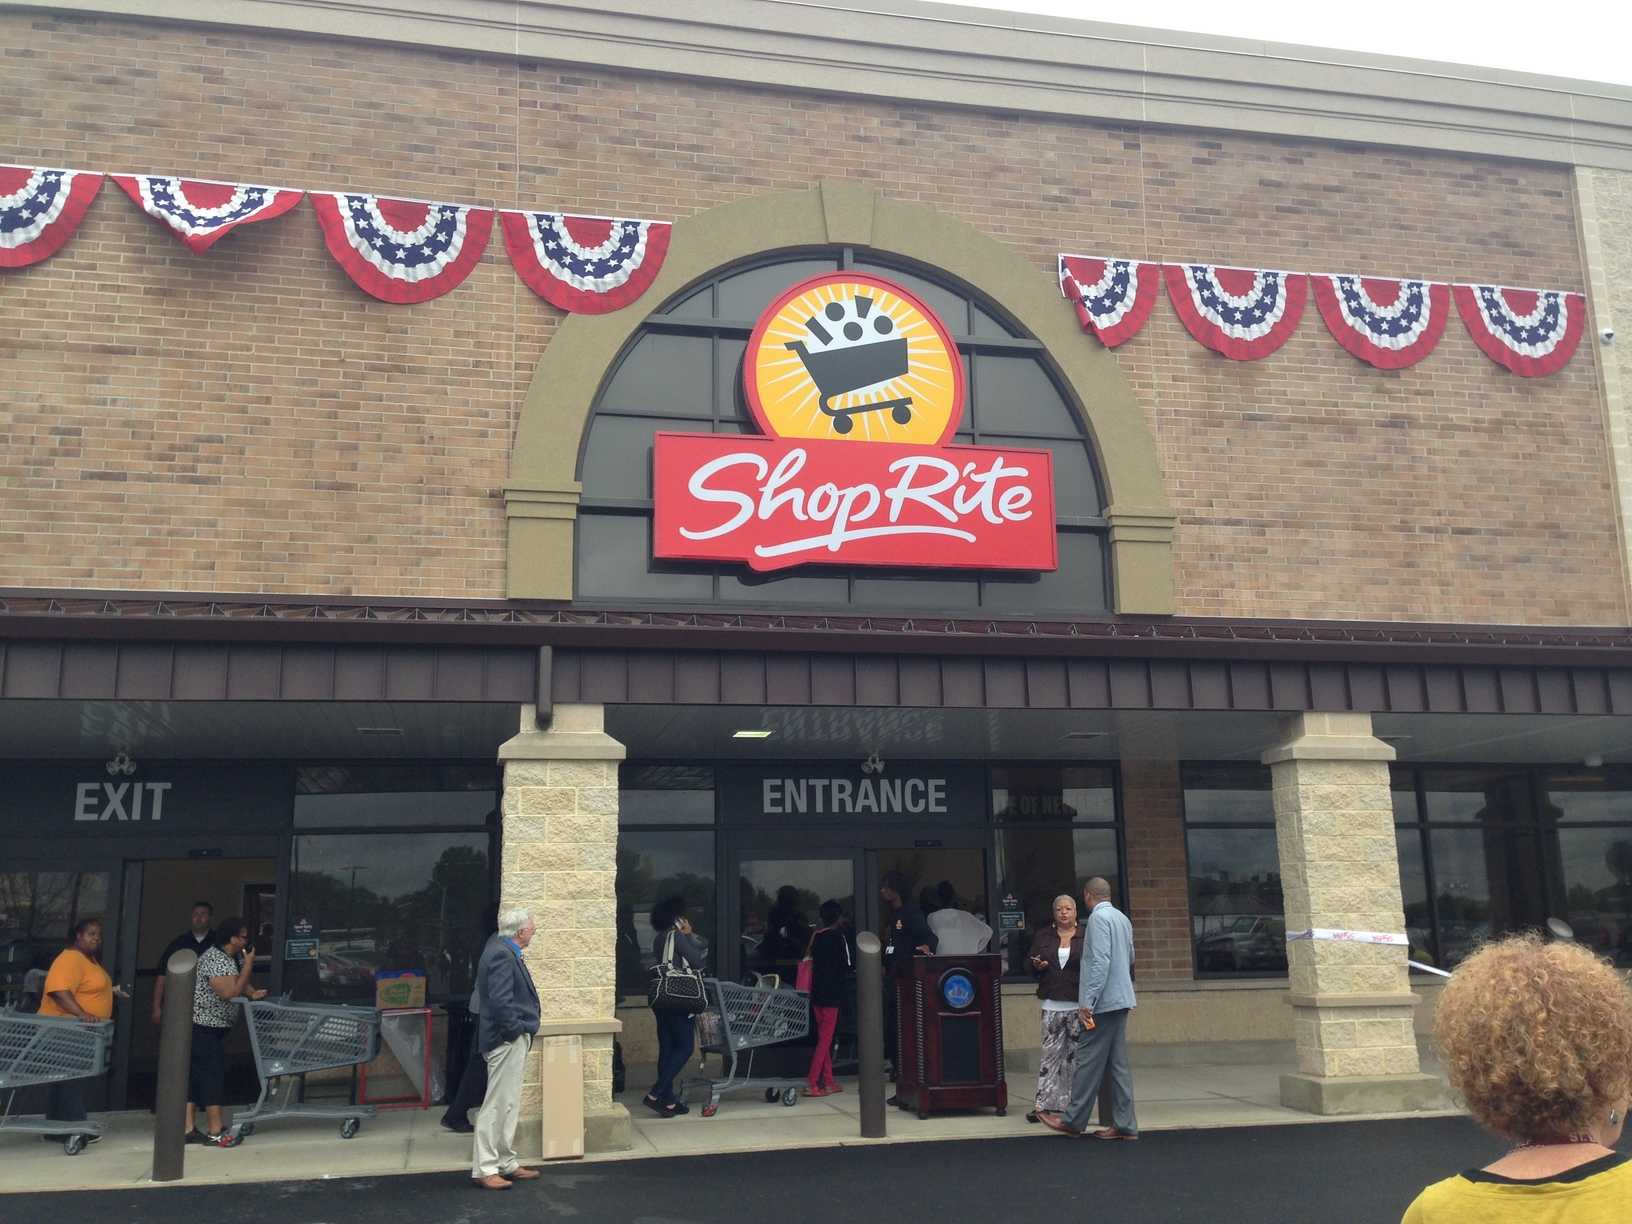 The new ShopRite opened on September 30th, 2015. It is located on Springfield Avenue in Newark.